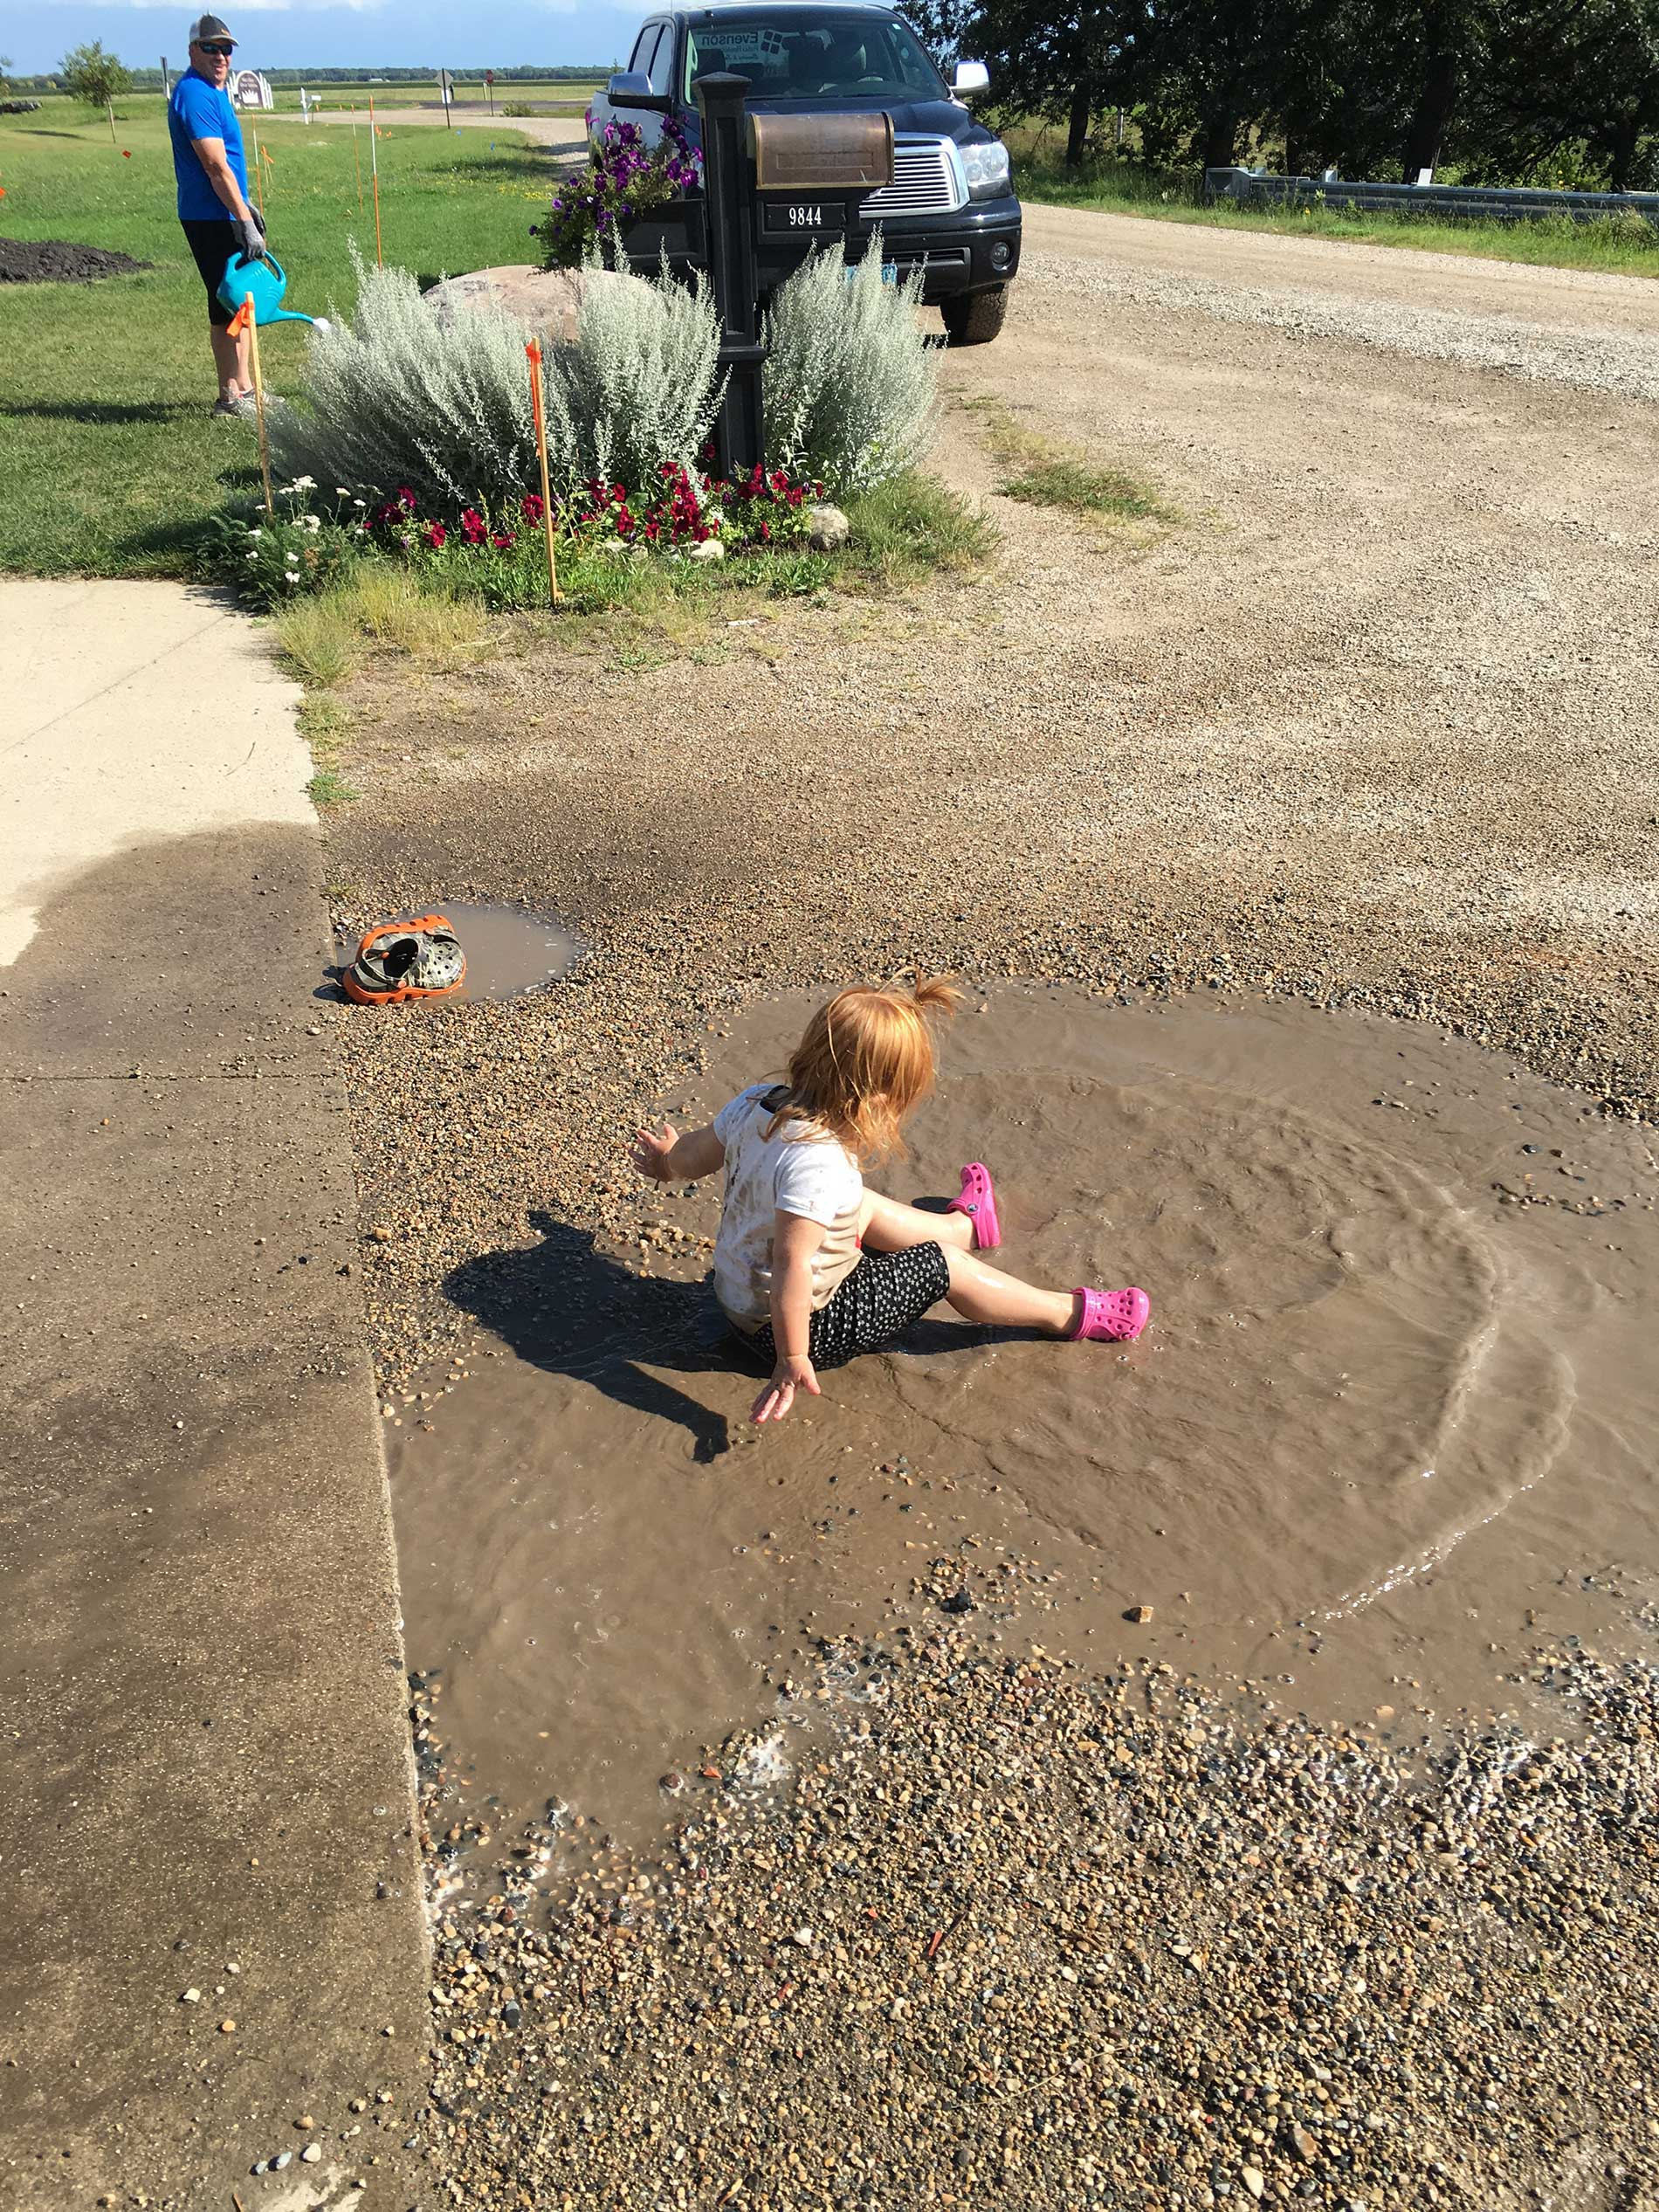 Brinley plopped down in the puddle